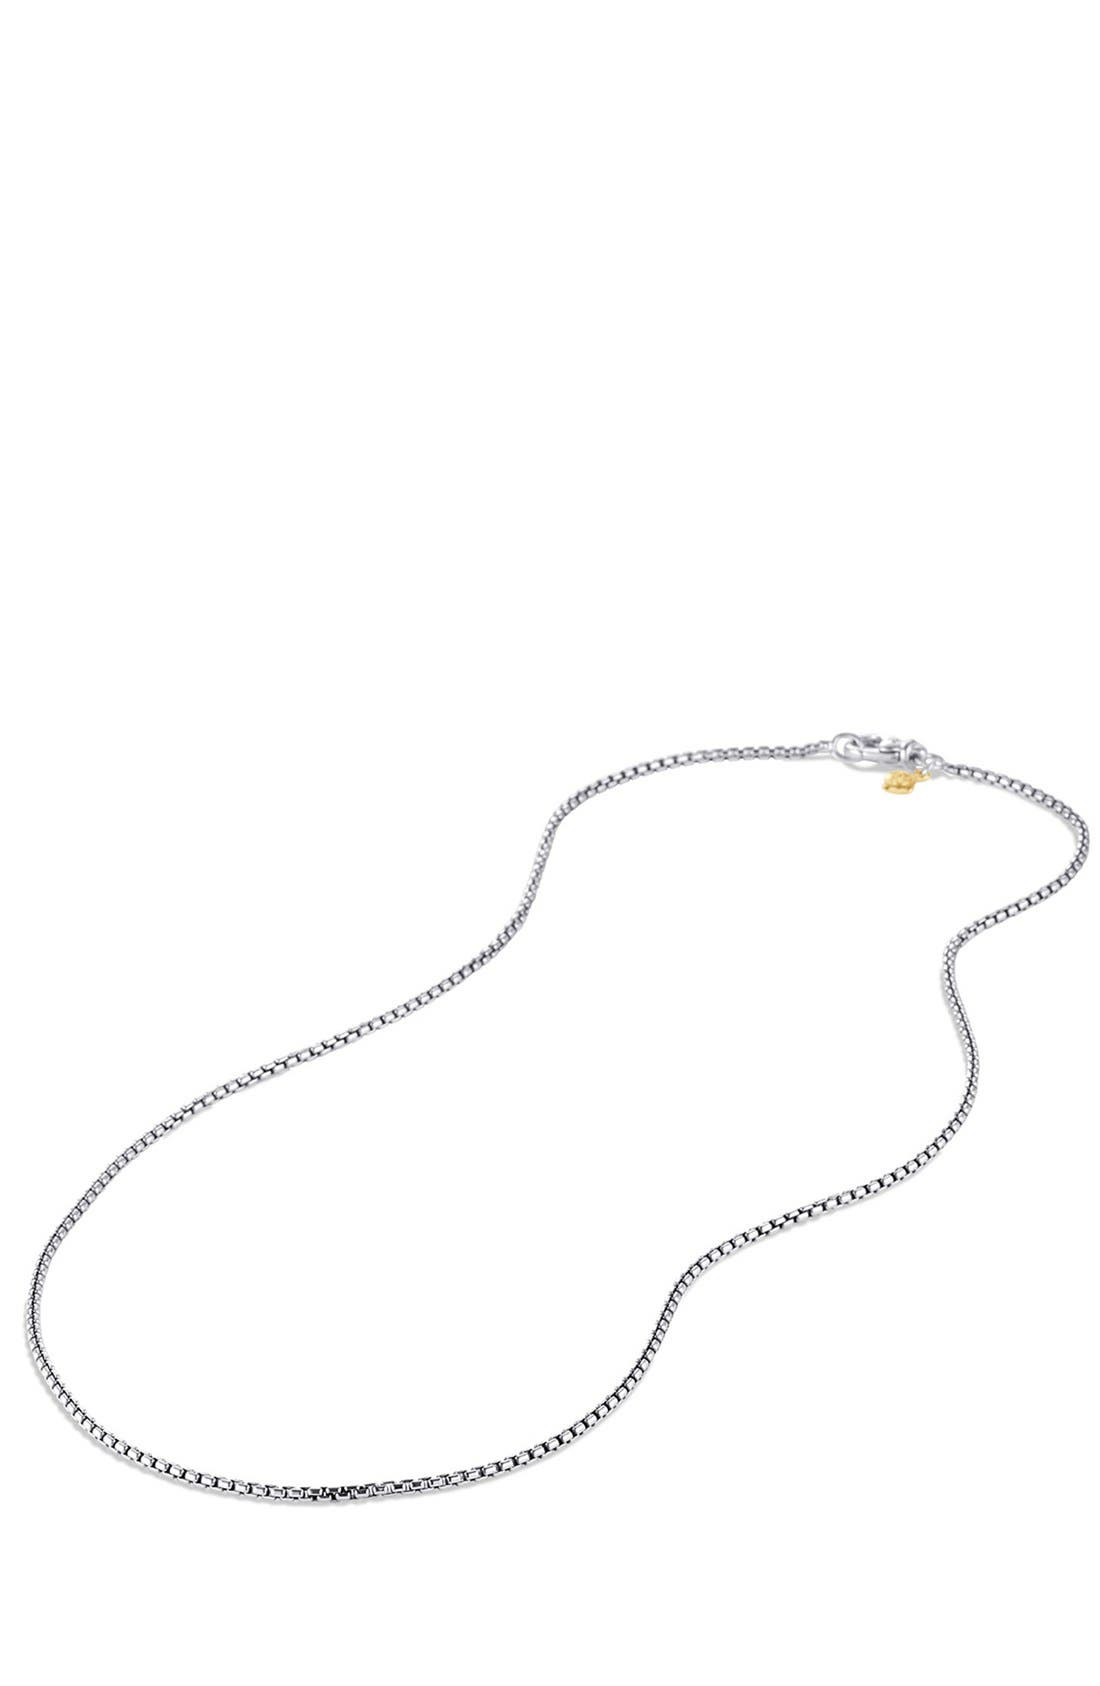 'Chain' Baby Box Chain Necklace,                             Alternate thumbnail 2, color,                             TWO TONE